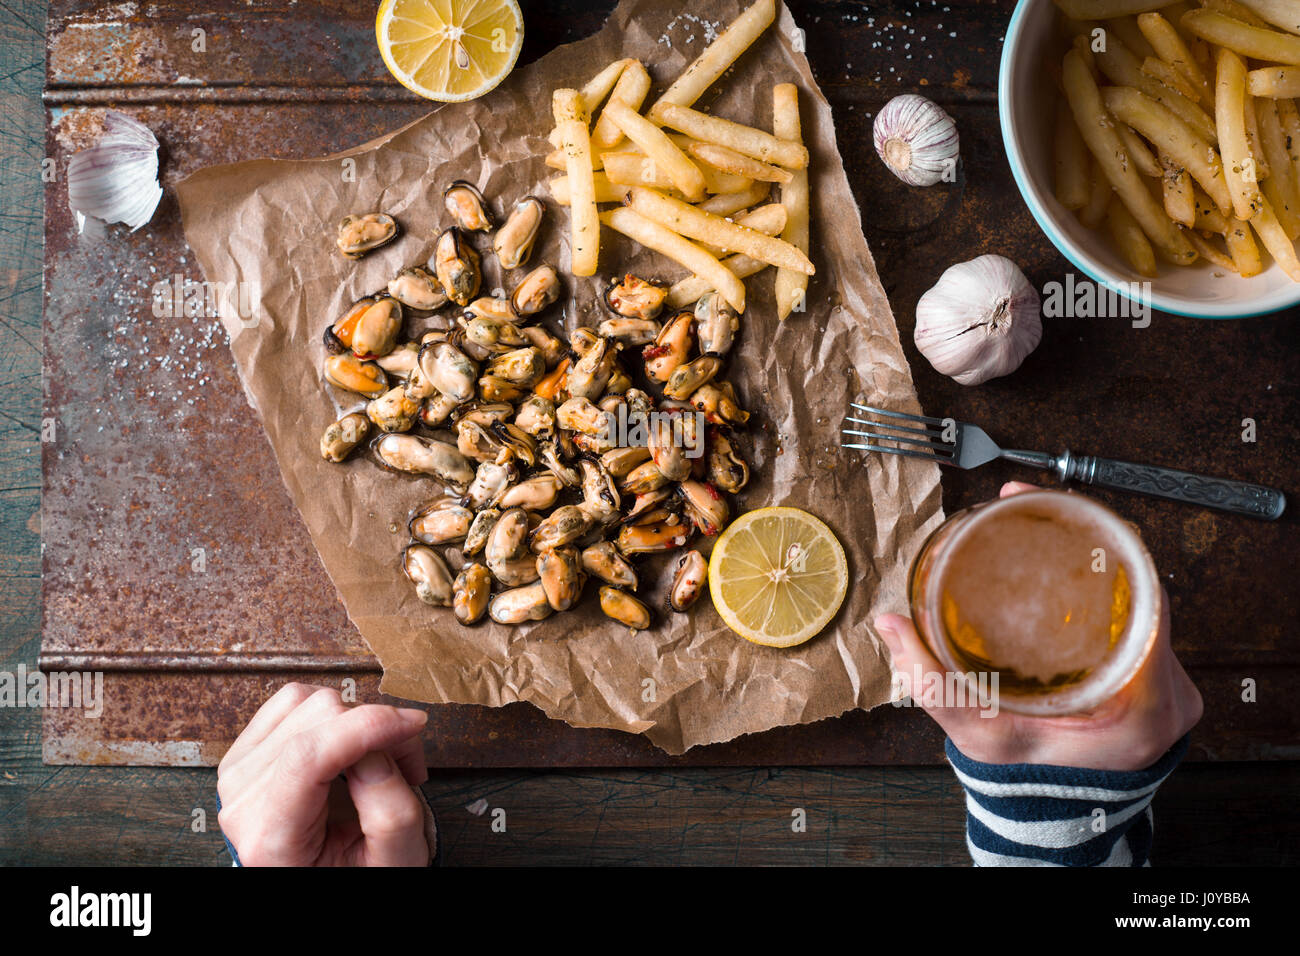 Drinking beer with mussels and French fries top view - Stock Image